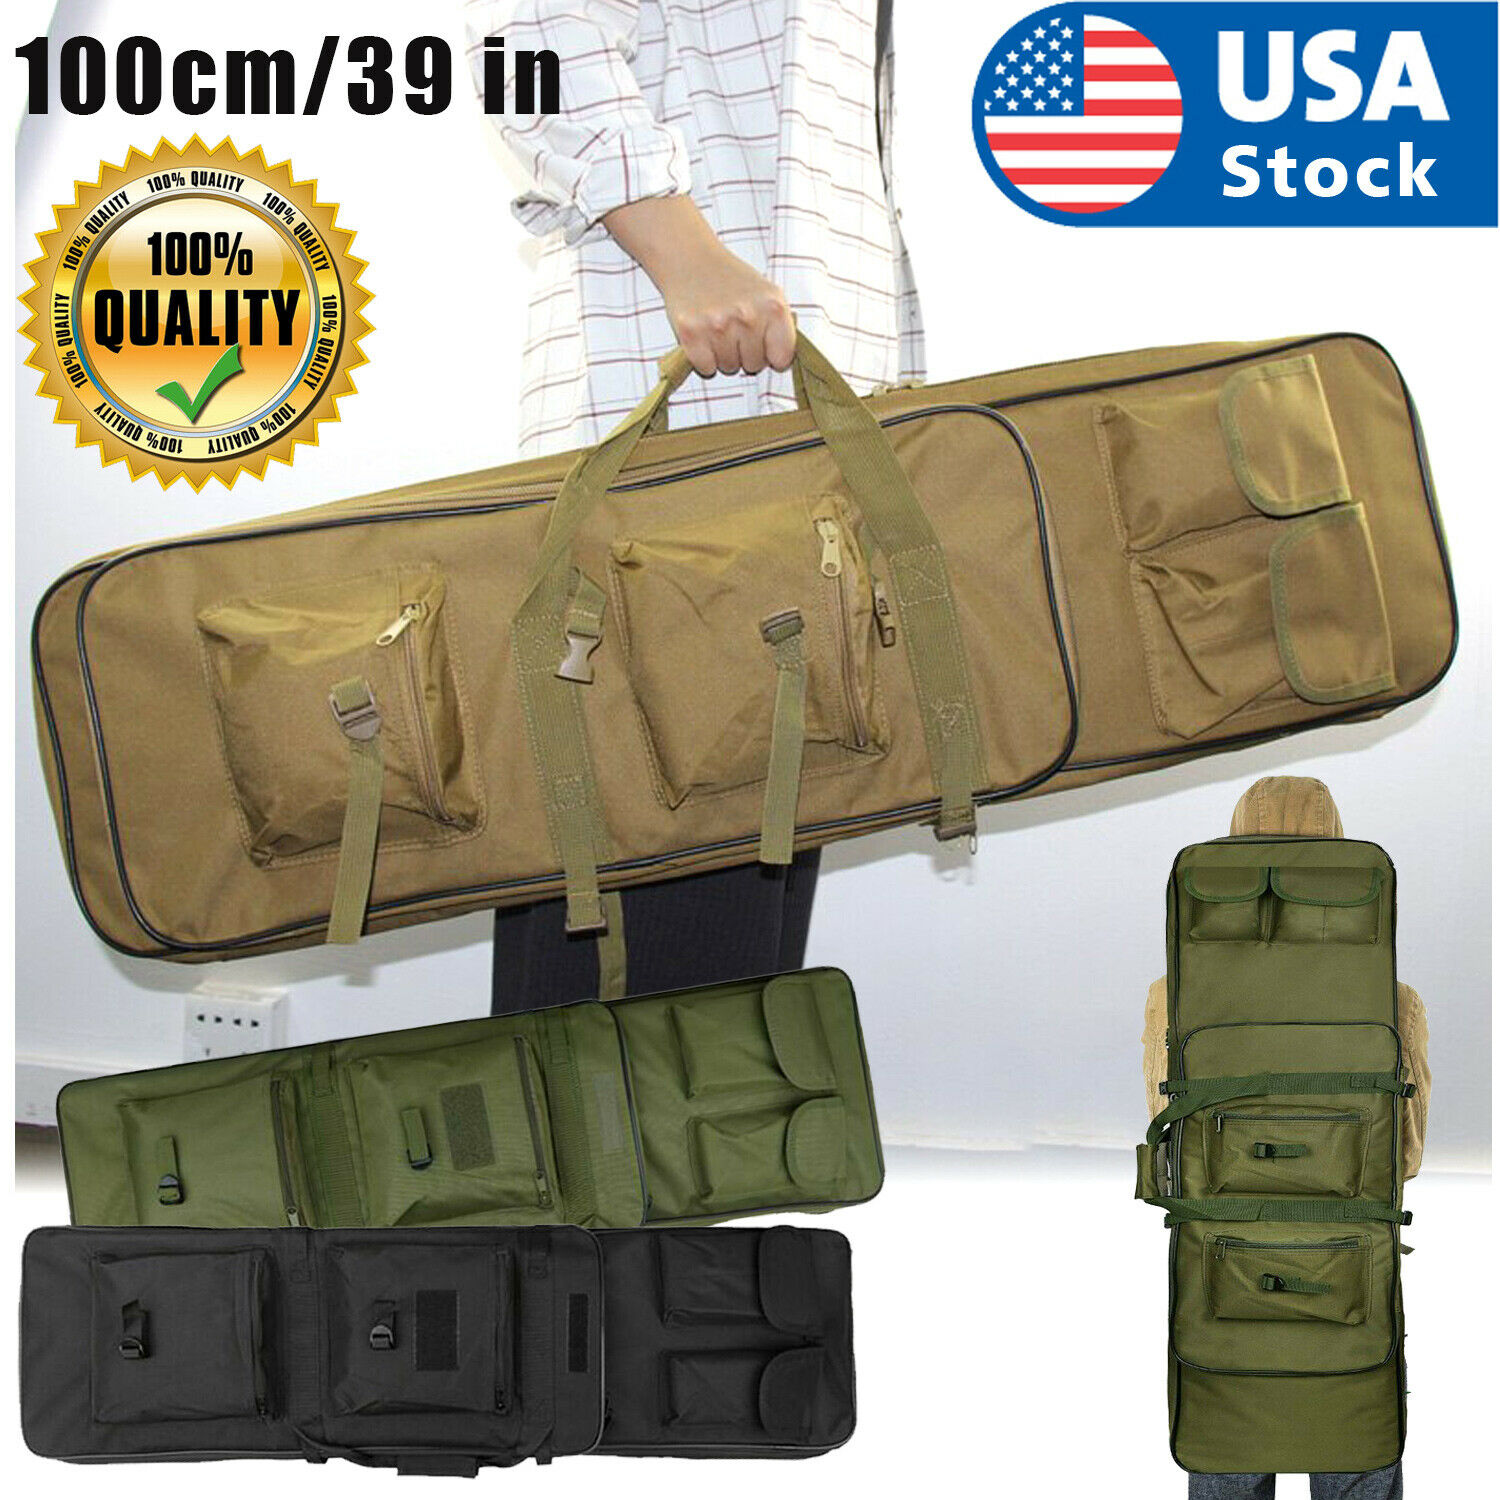 39″ Tactical Carbine Rifle Range Gun Carry Case Double Padded Backpack Molle Bag Cases